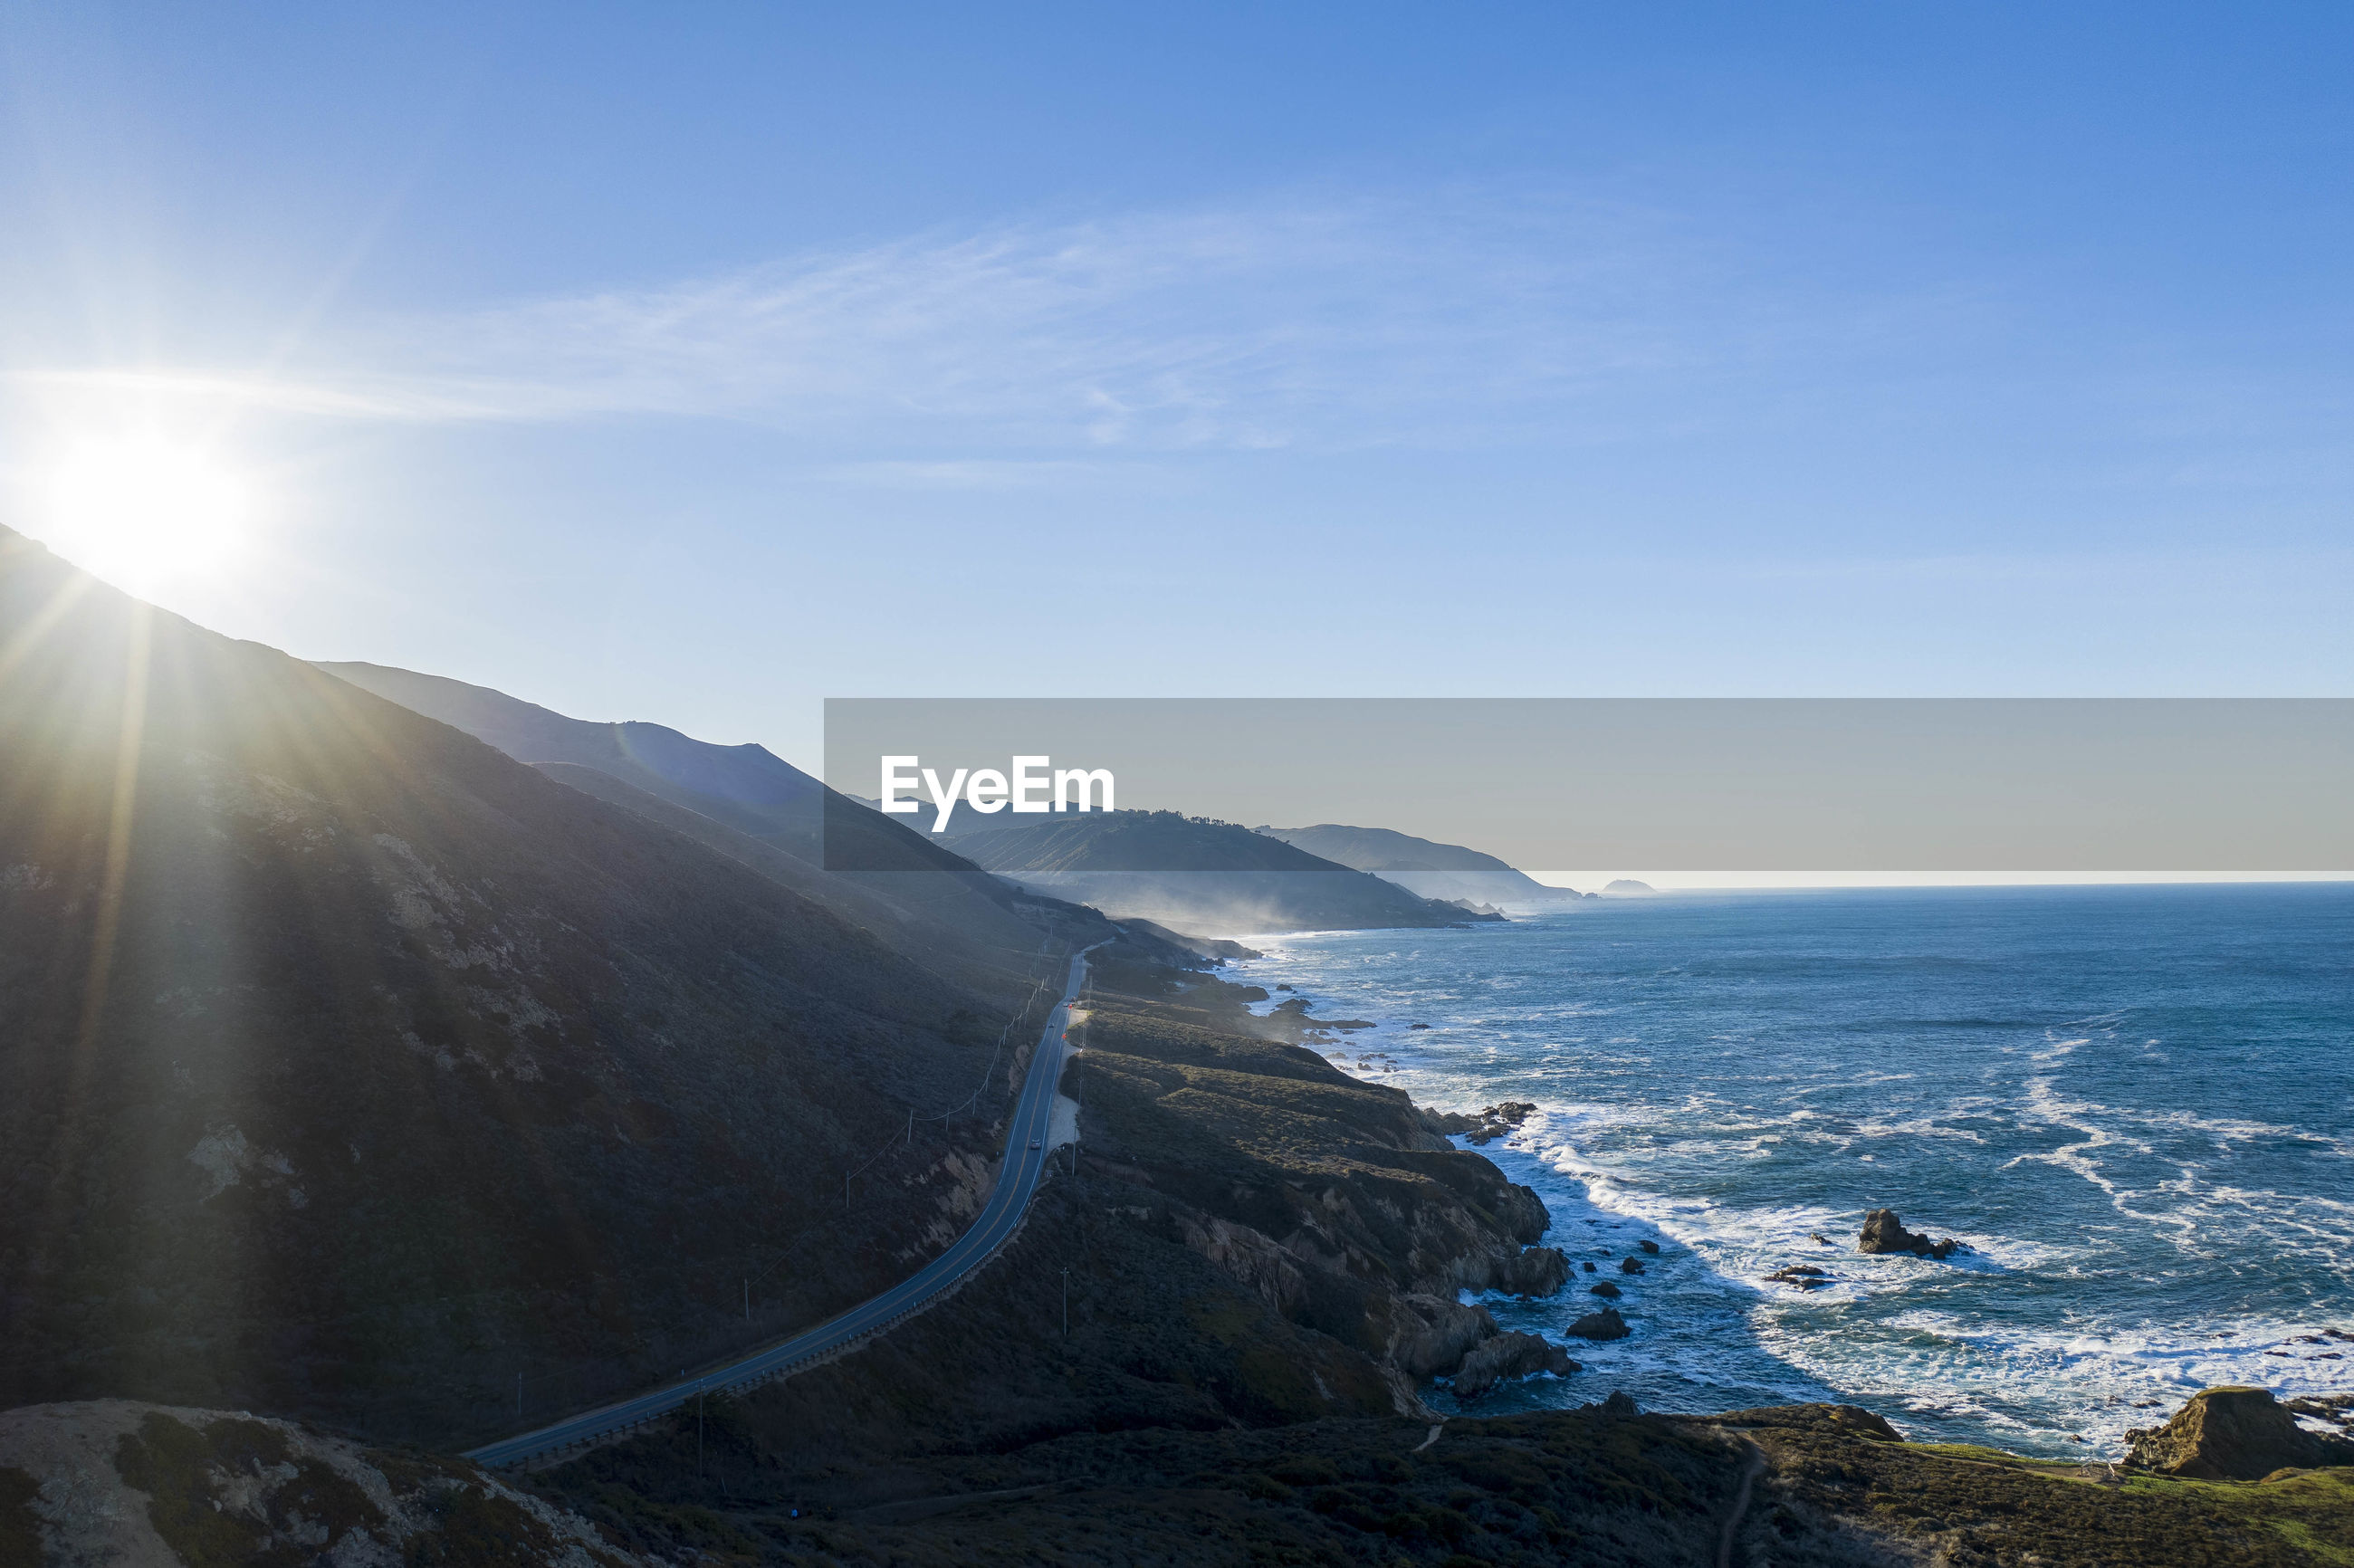 SCENIC VIEW OF SEA AND MOUNTAINS AGAINST BRIGHT SUN